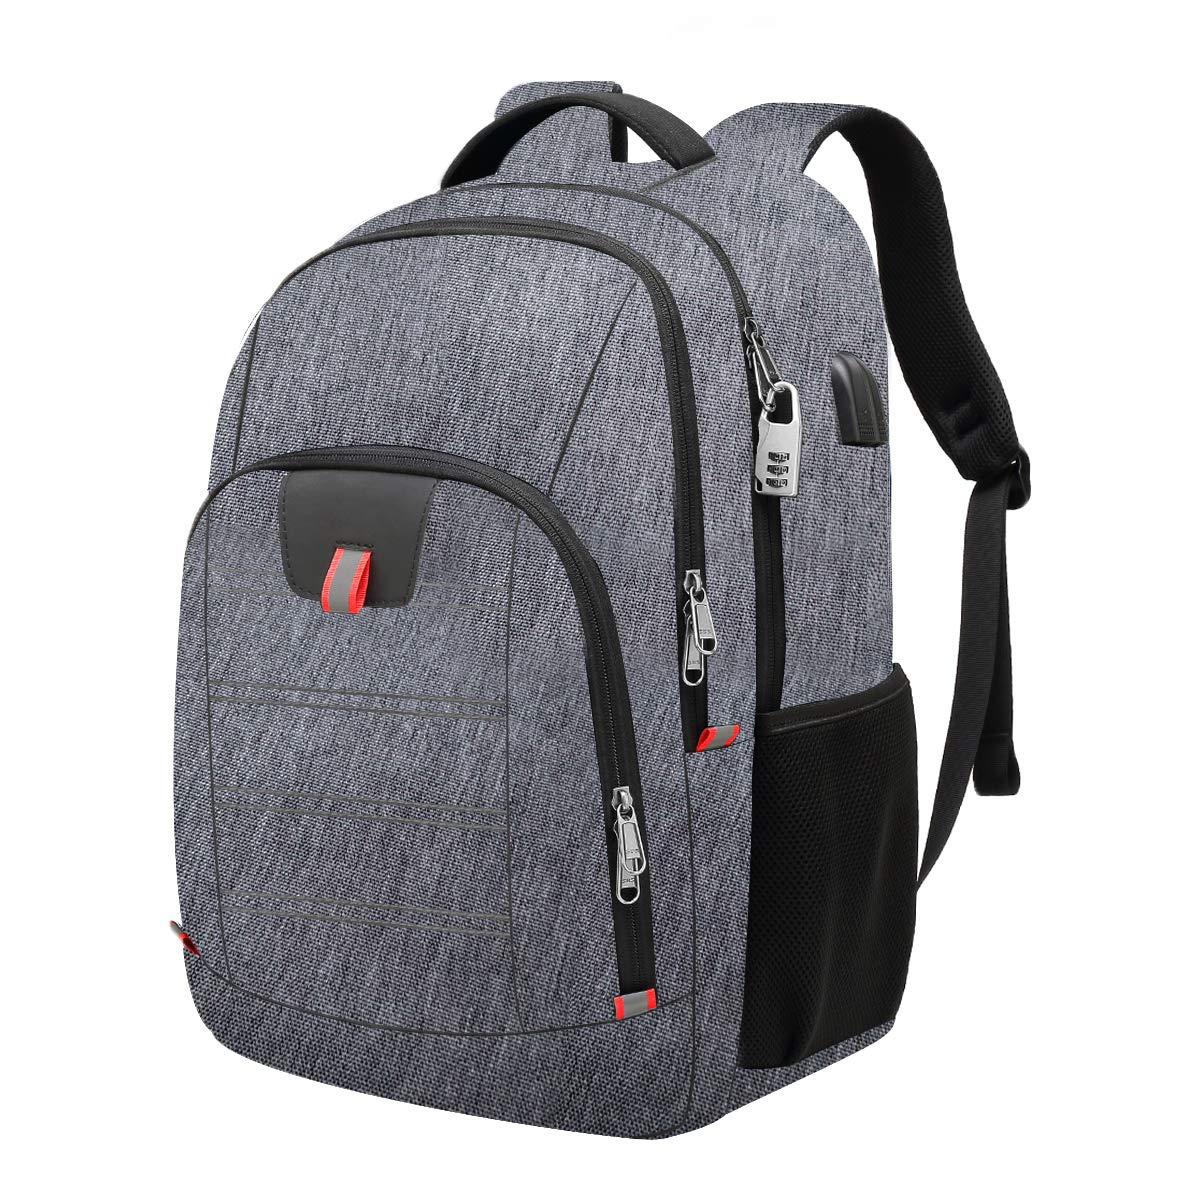 Travel Laptop Backpack,Extra Large Anti Theft College School Backpack for Men and Women with USB Charging Port,Water Resistant Big Business Computer Backpack Bag Fit 17 Inch Laptop and Notebook,Grey by Della Gao